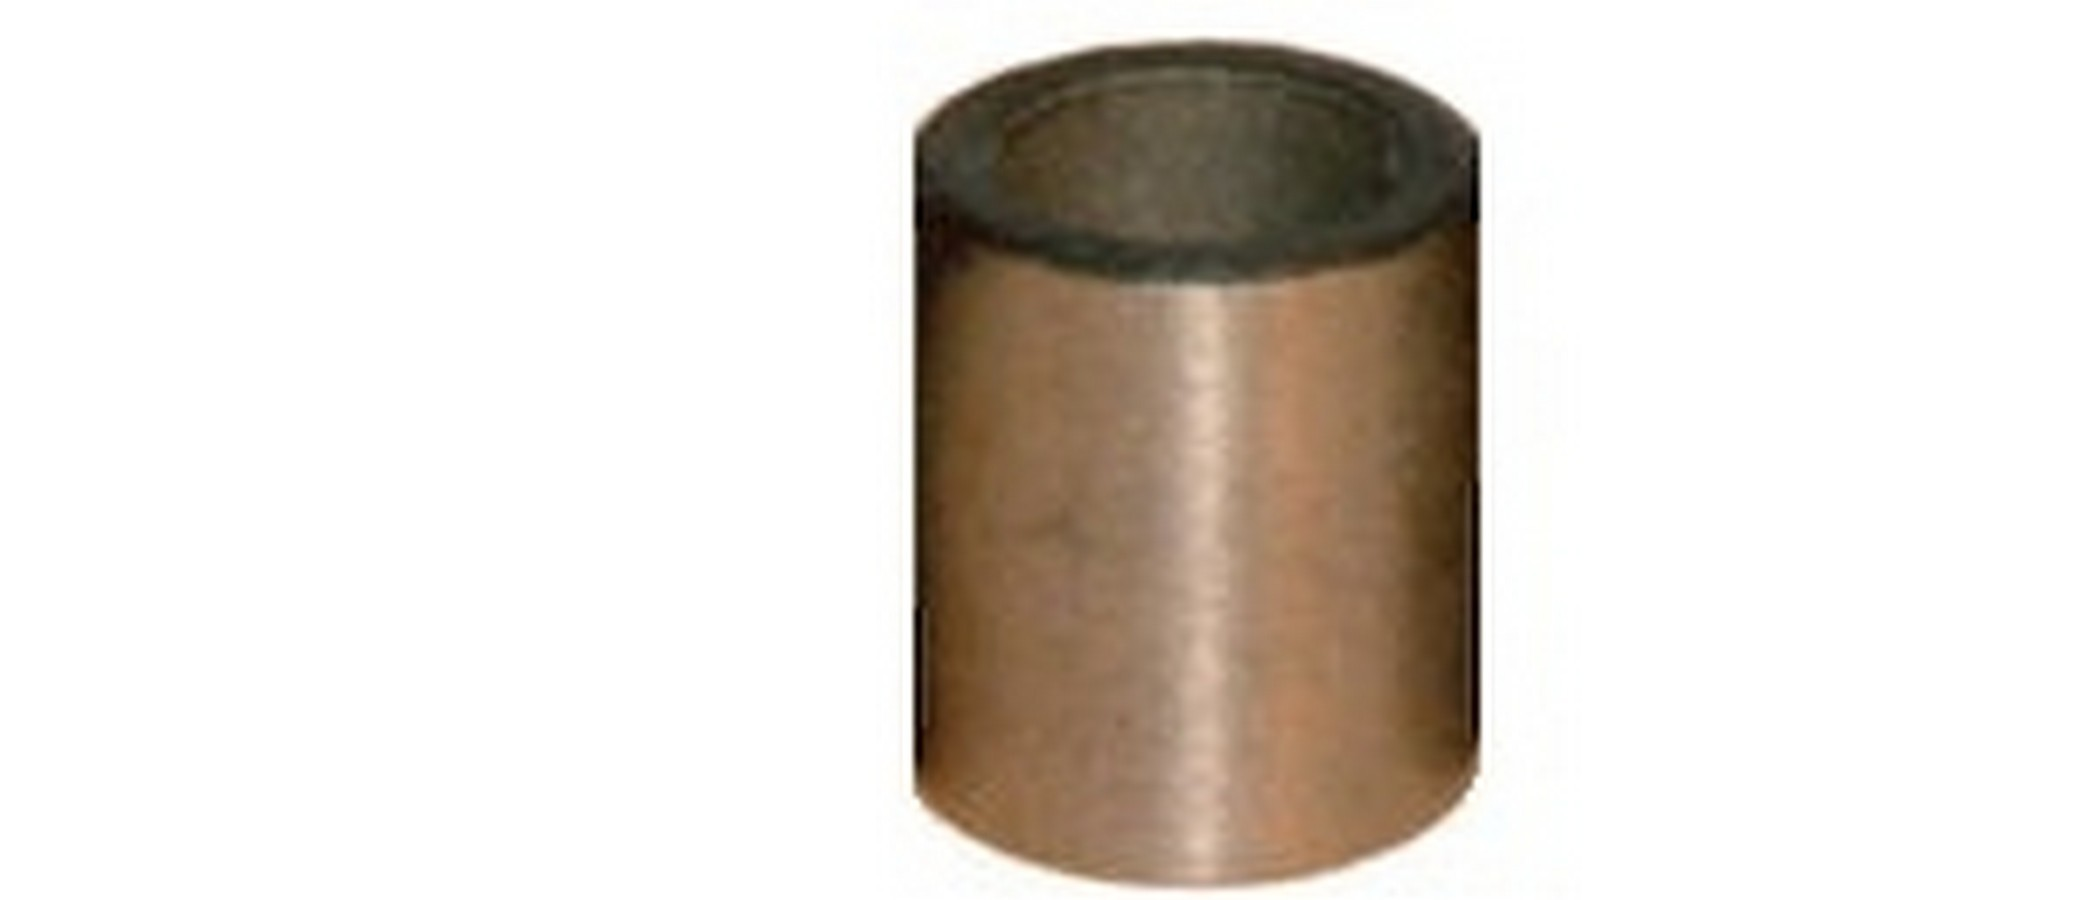 A-1 Products 10460 Reducer Bushing, 1/2 in OD to 3/8 in ID, Each